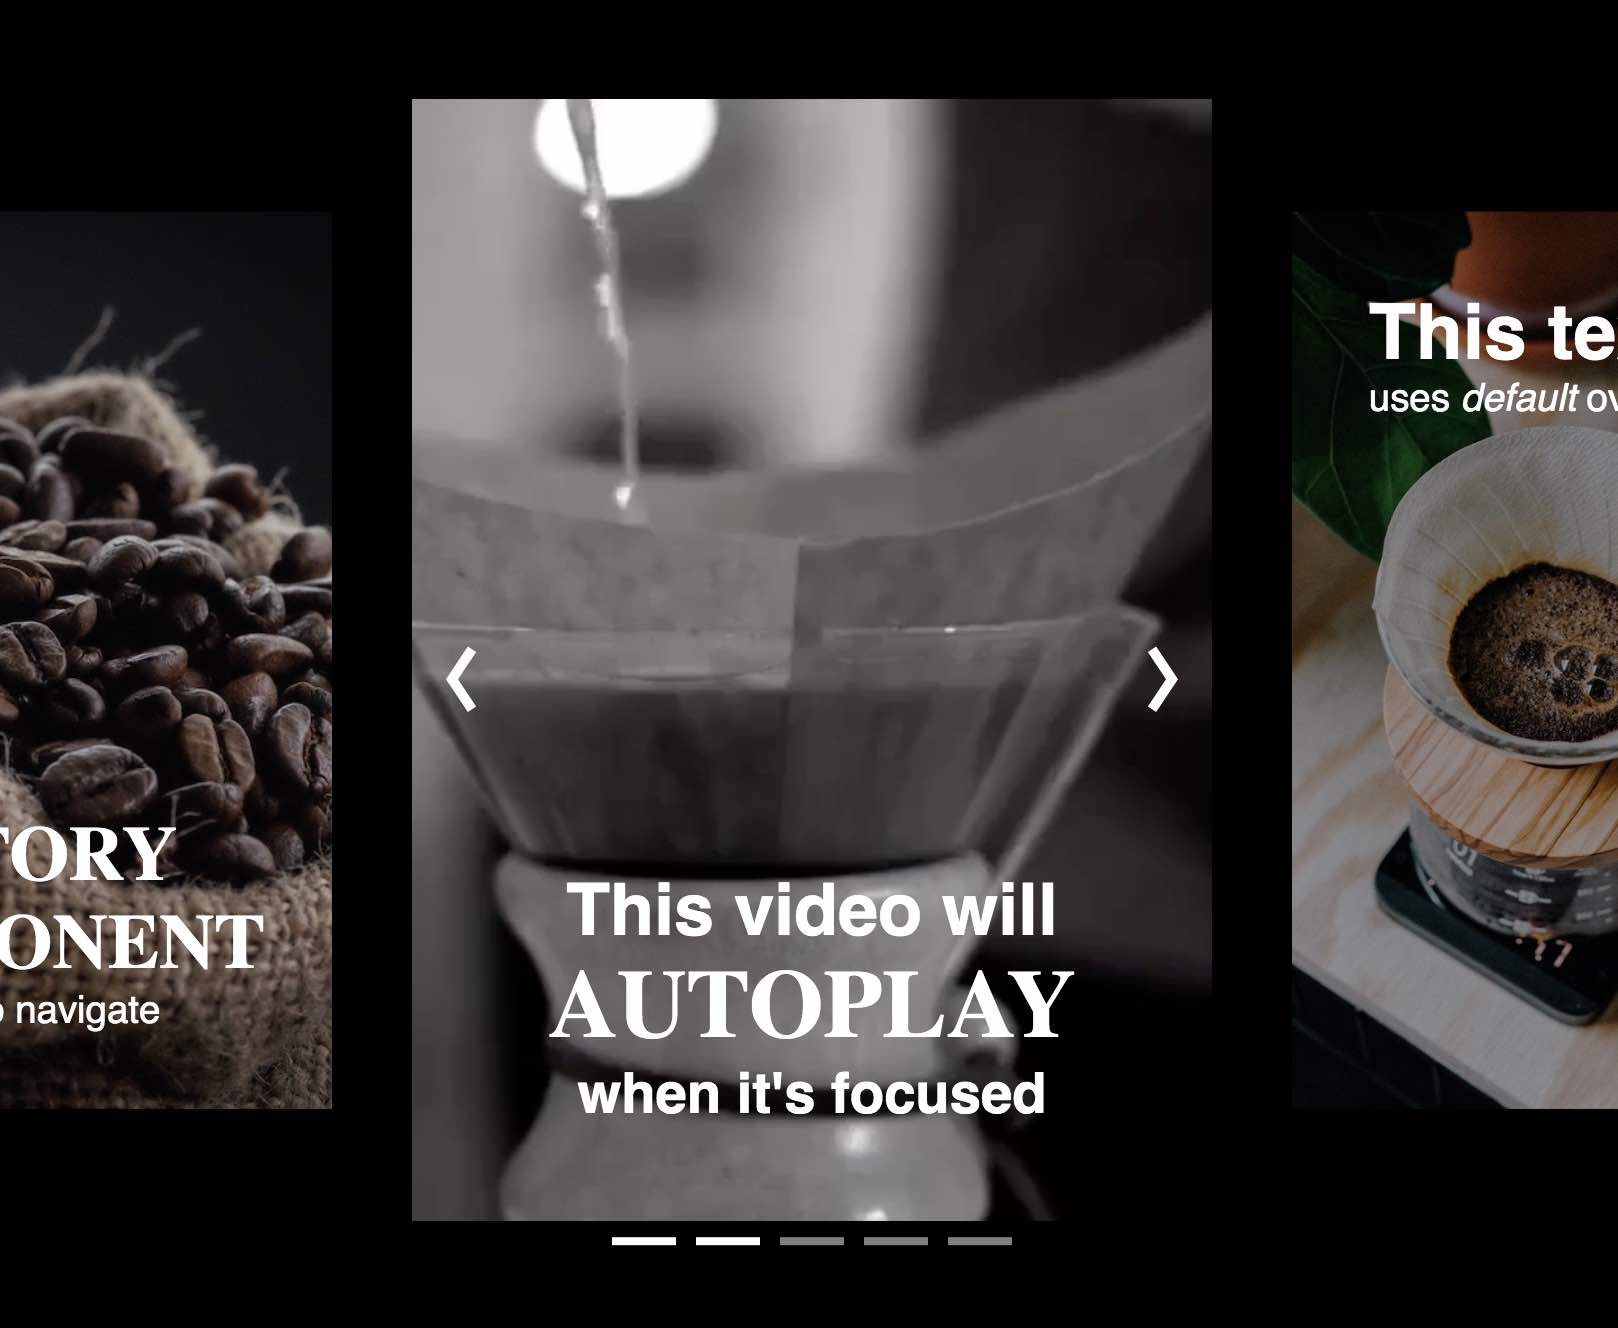 A completed story-viewer component displaying three images of coffee